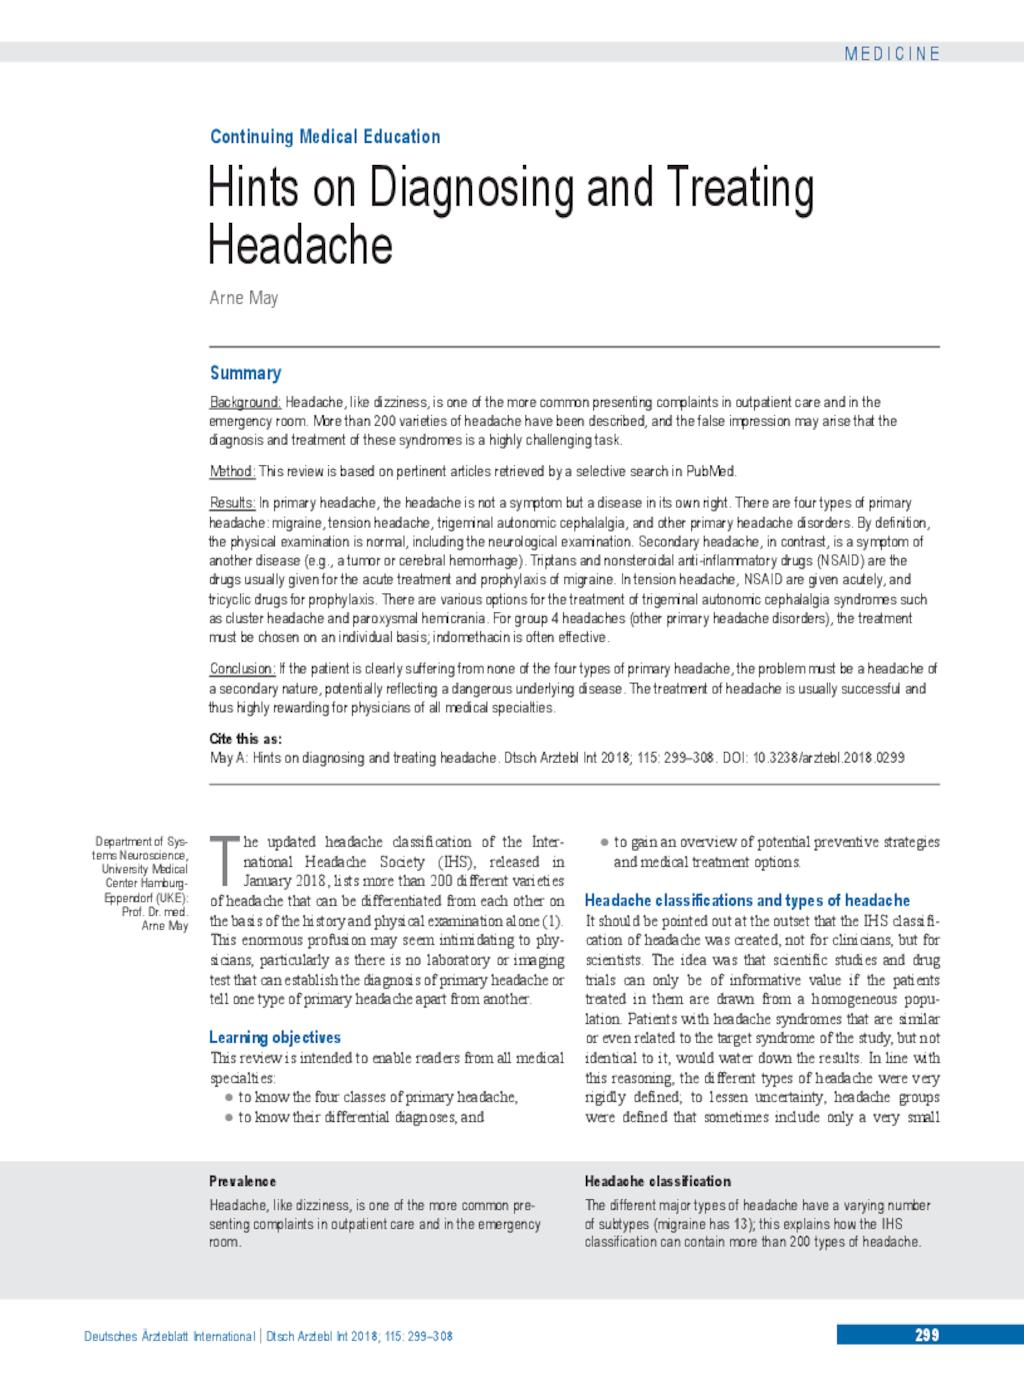 Hints on Diagnosing and Treating Headache (27 04 2018)